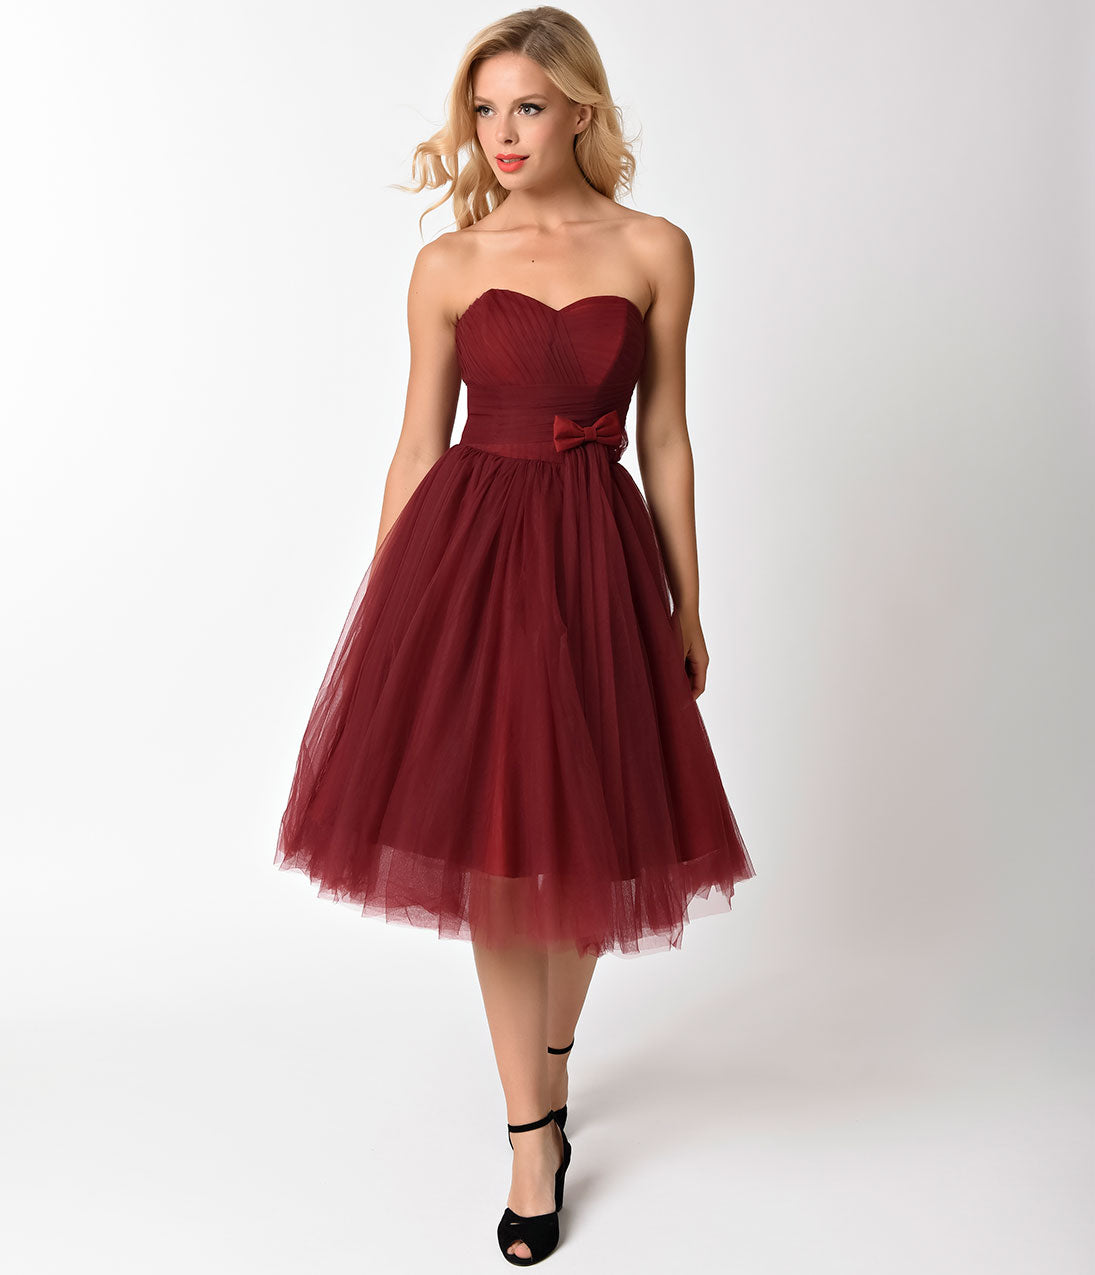 50s Inspired Party Dresses